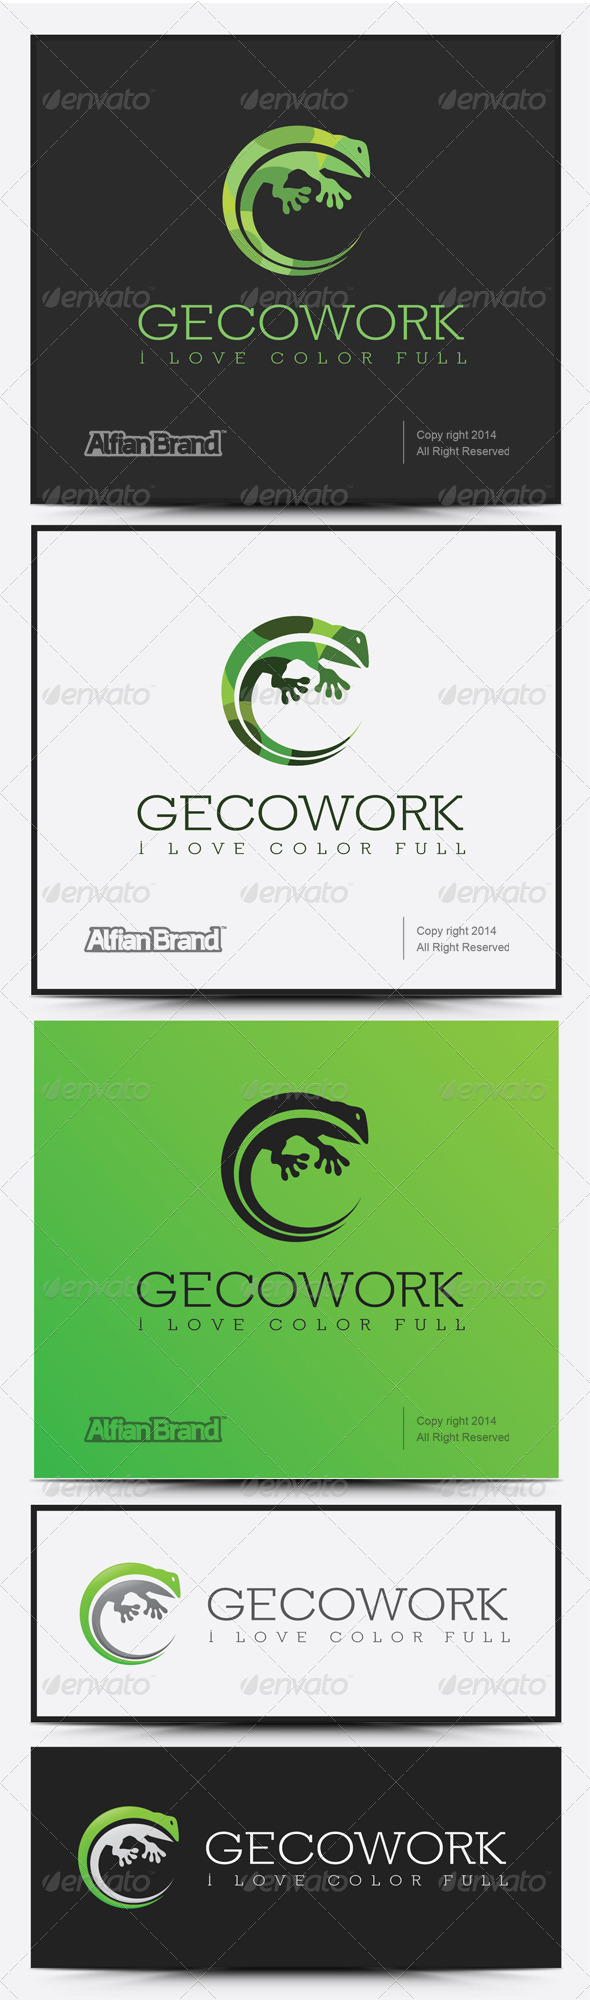 GraphicRiver Gecko Work Logo 8082349